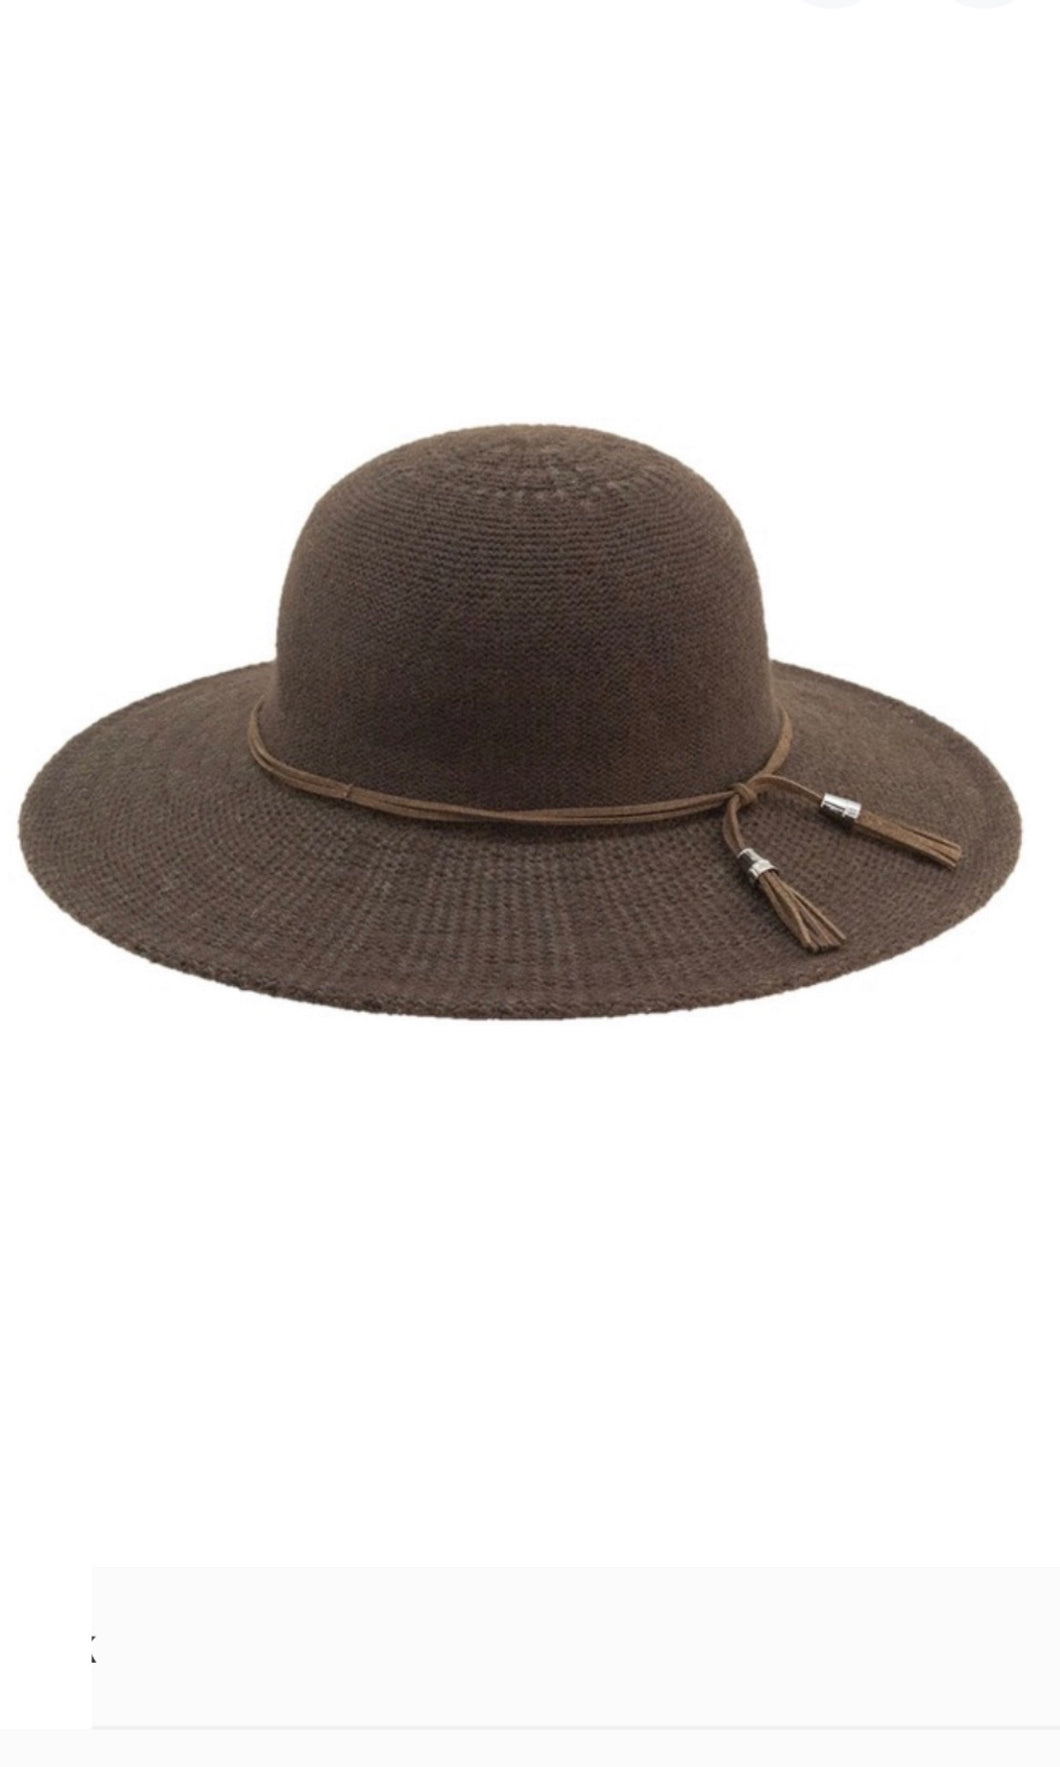 Crawford Brown Boho Suedette Braid Floppy Wide Brim Hat